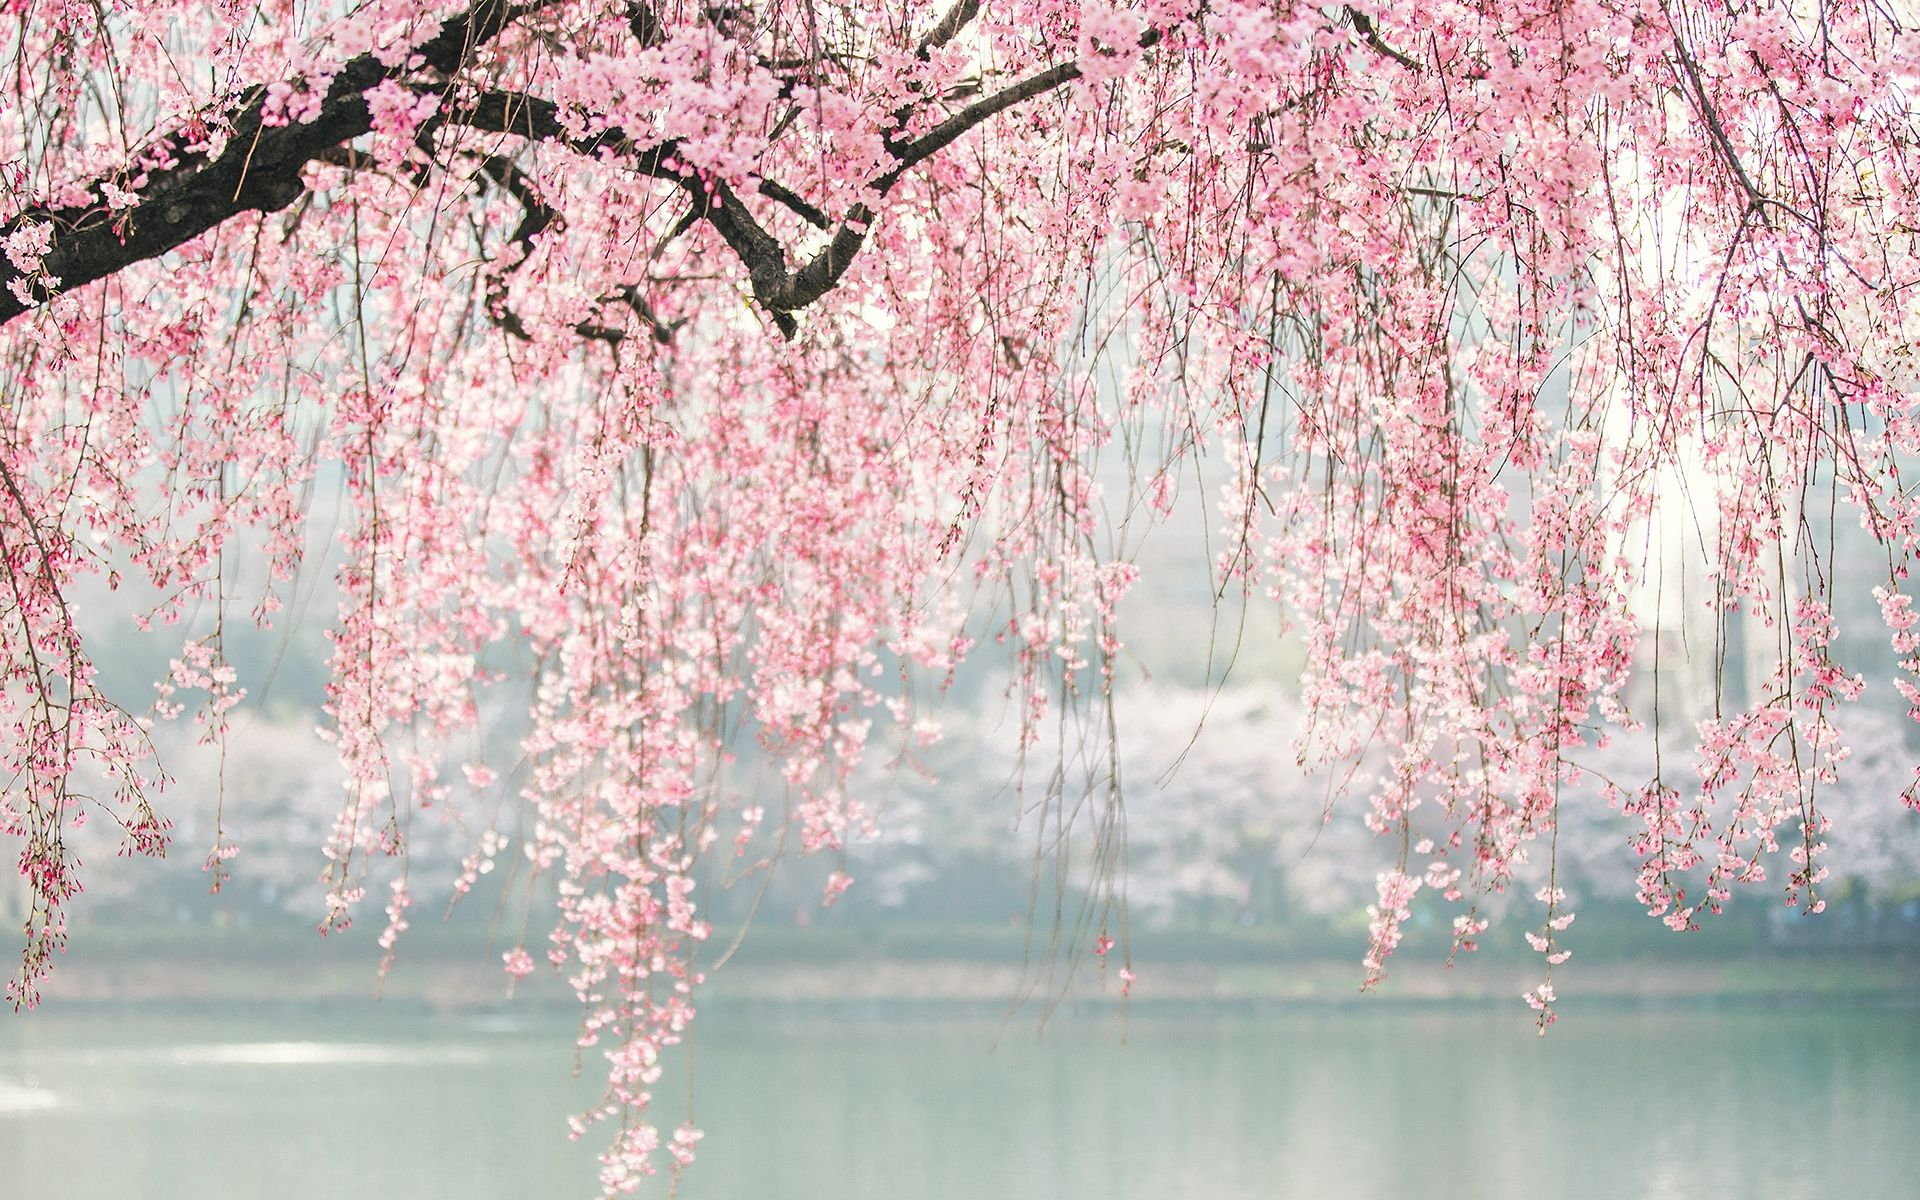 Download 1920x1200 Wallpaper Japan Cherry Blossom Tree Flowers Widescreen 16 10 Widescreen 1920x1200 White Blossom Tree 1920x1200 Wallpaper Blossom Trees